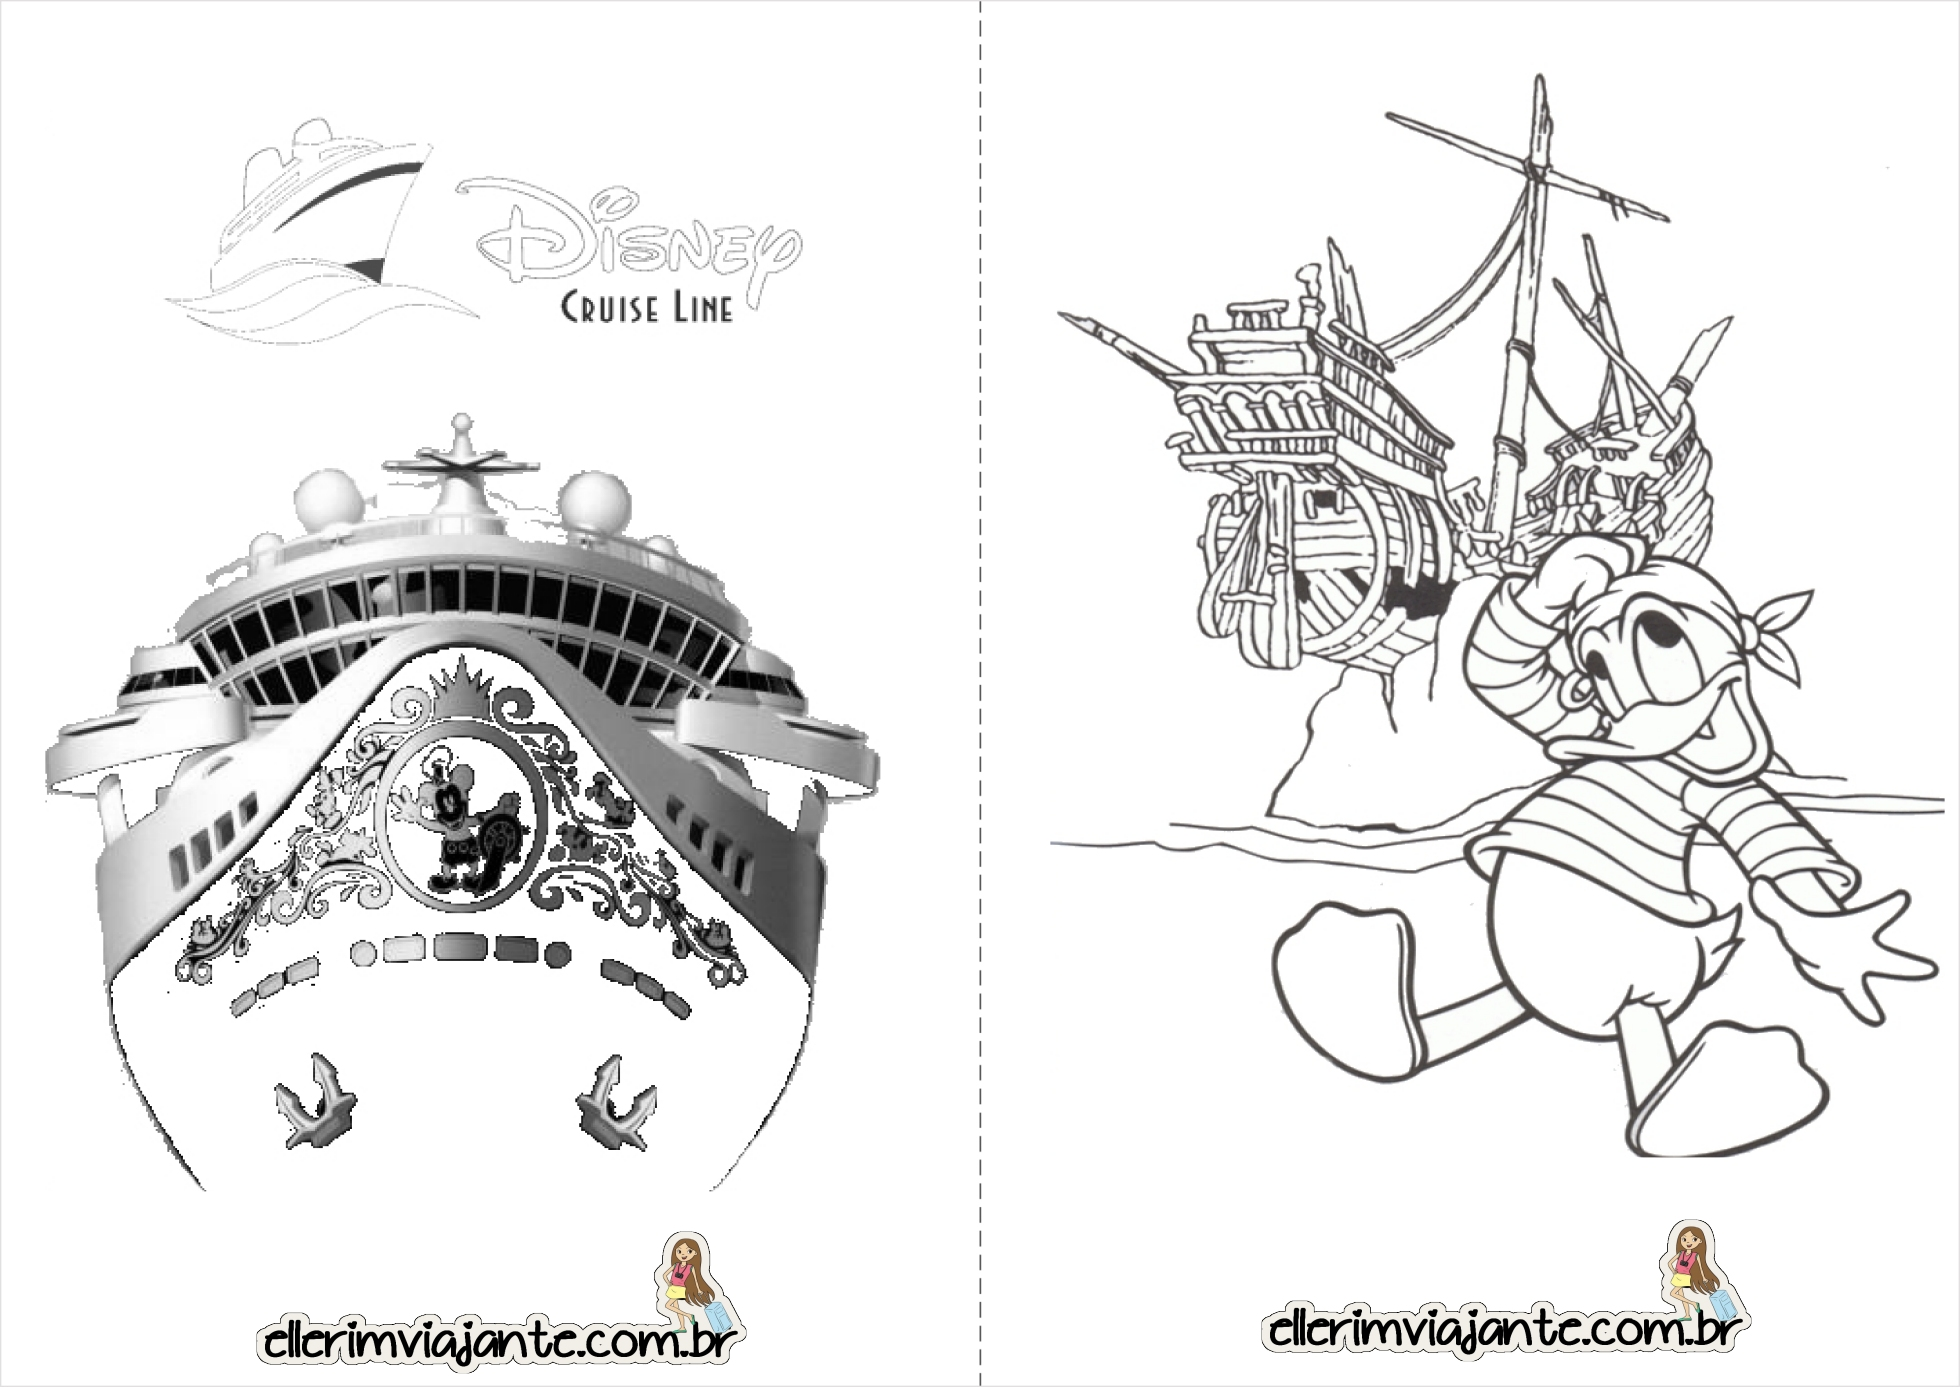 Disney Cruise Line Sheets Coloring Pages